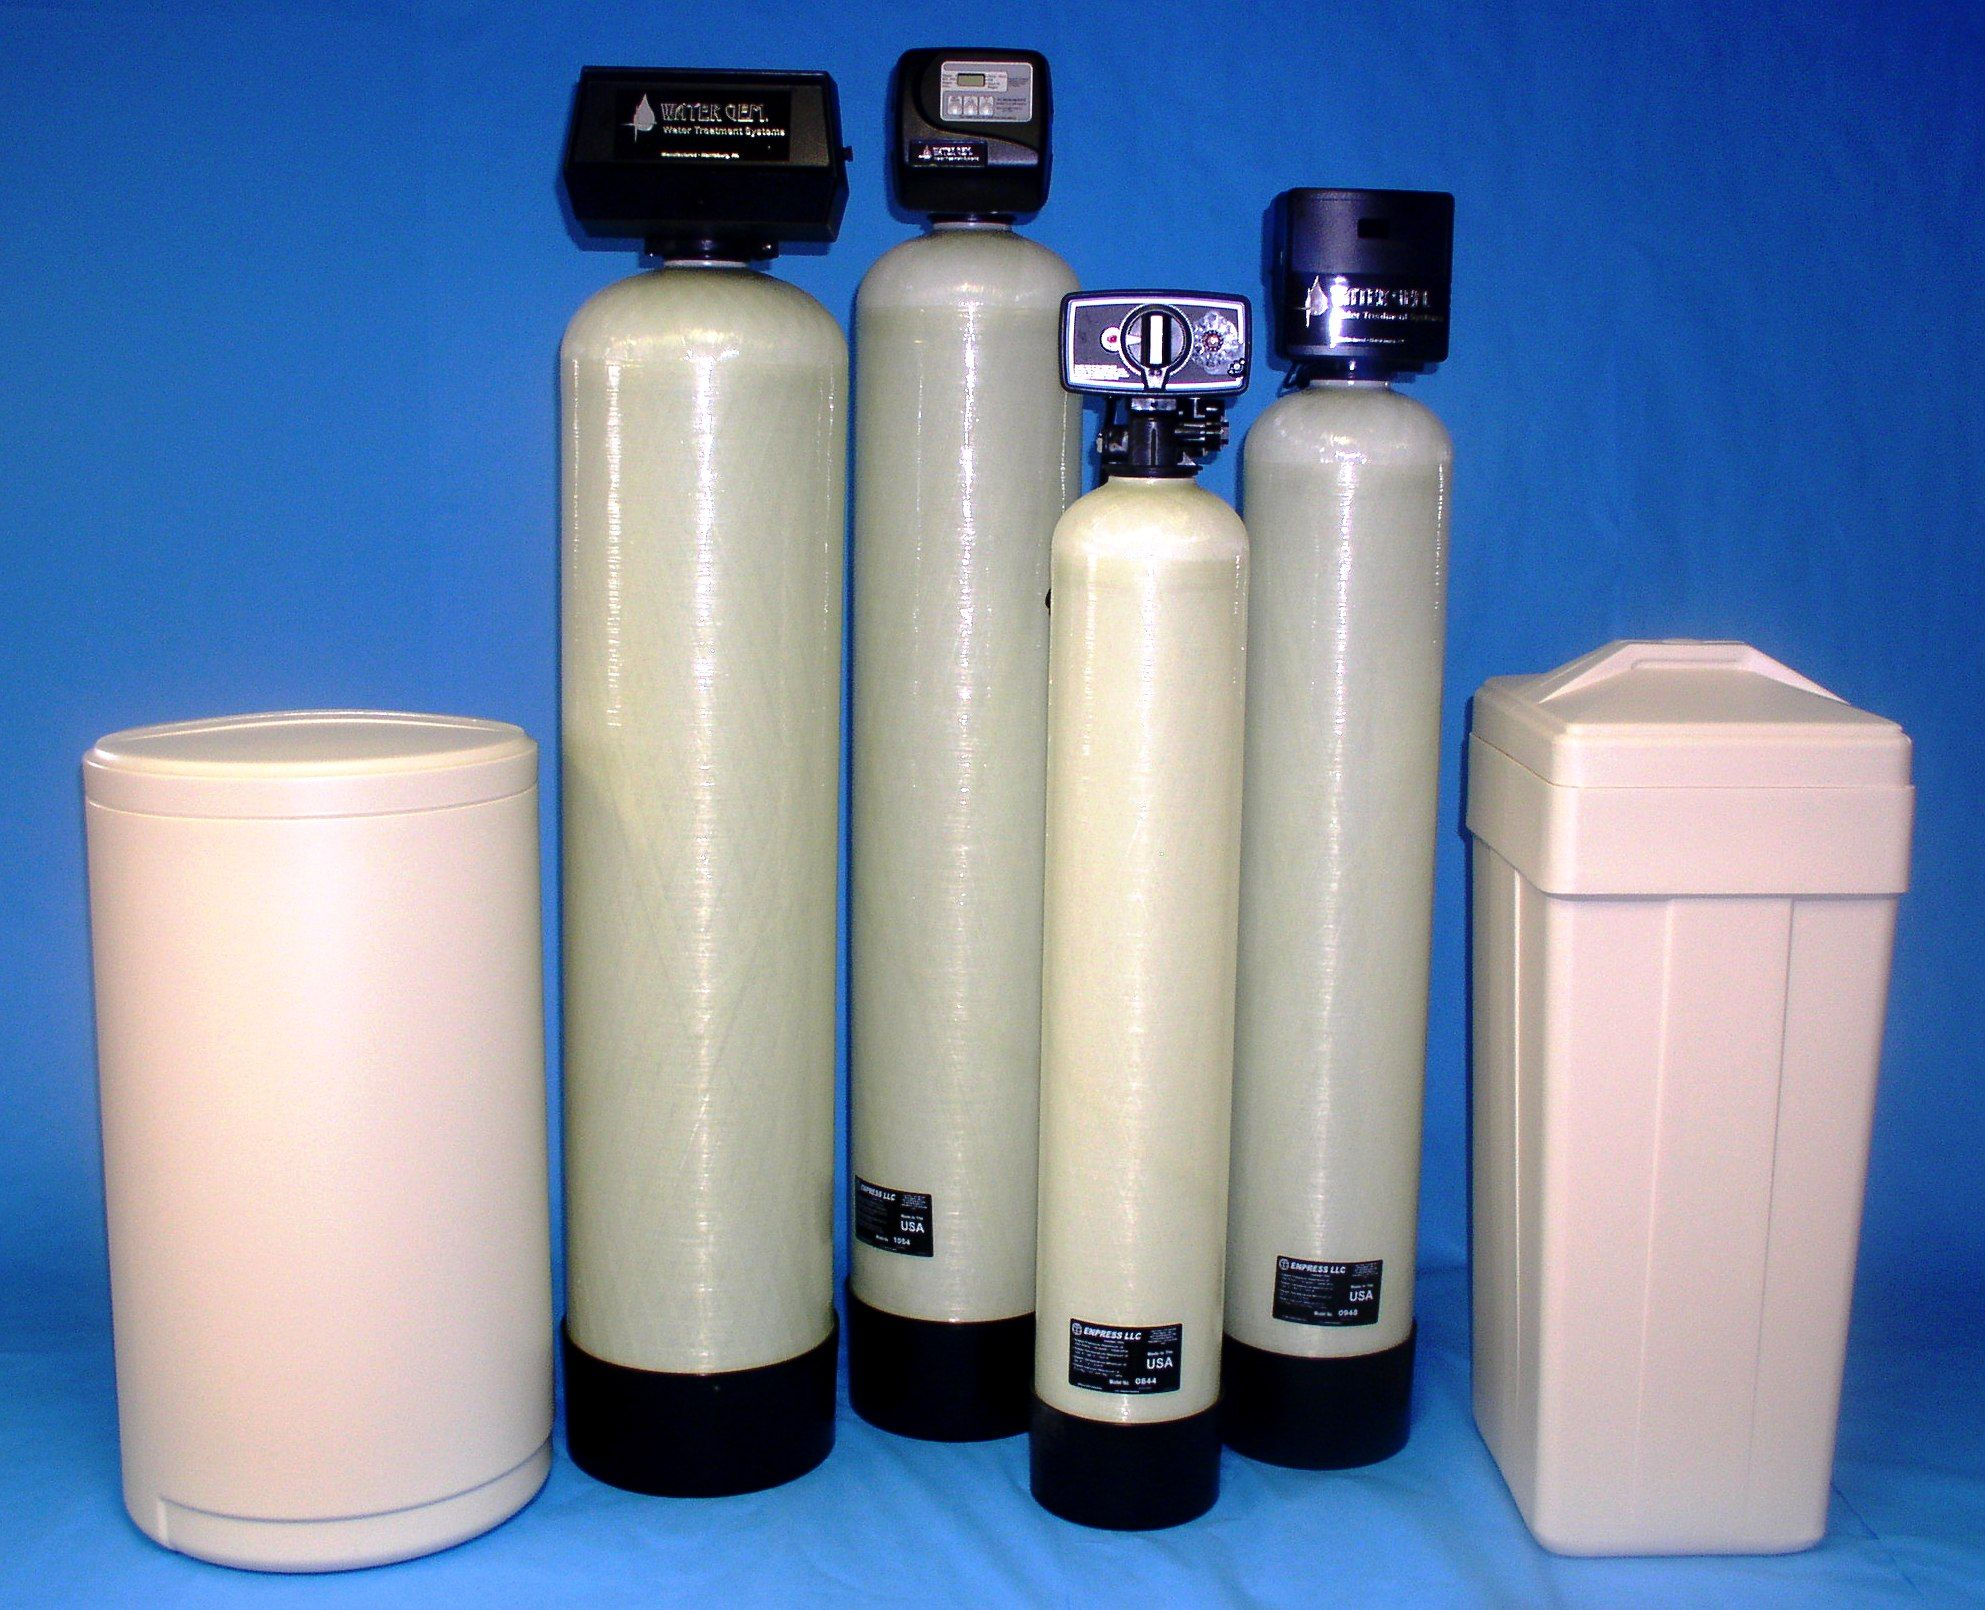 Water Softener Price Cool Water Softeners Appliances Water Plumbing Whole House